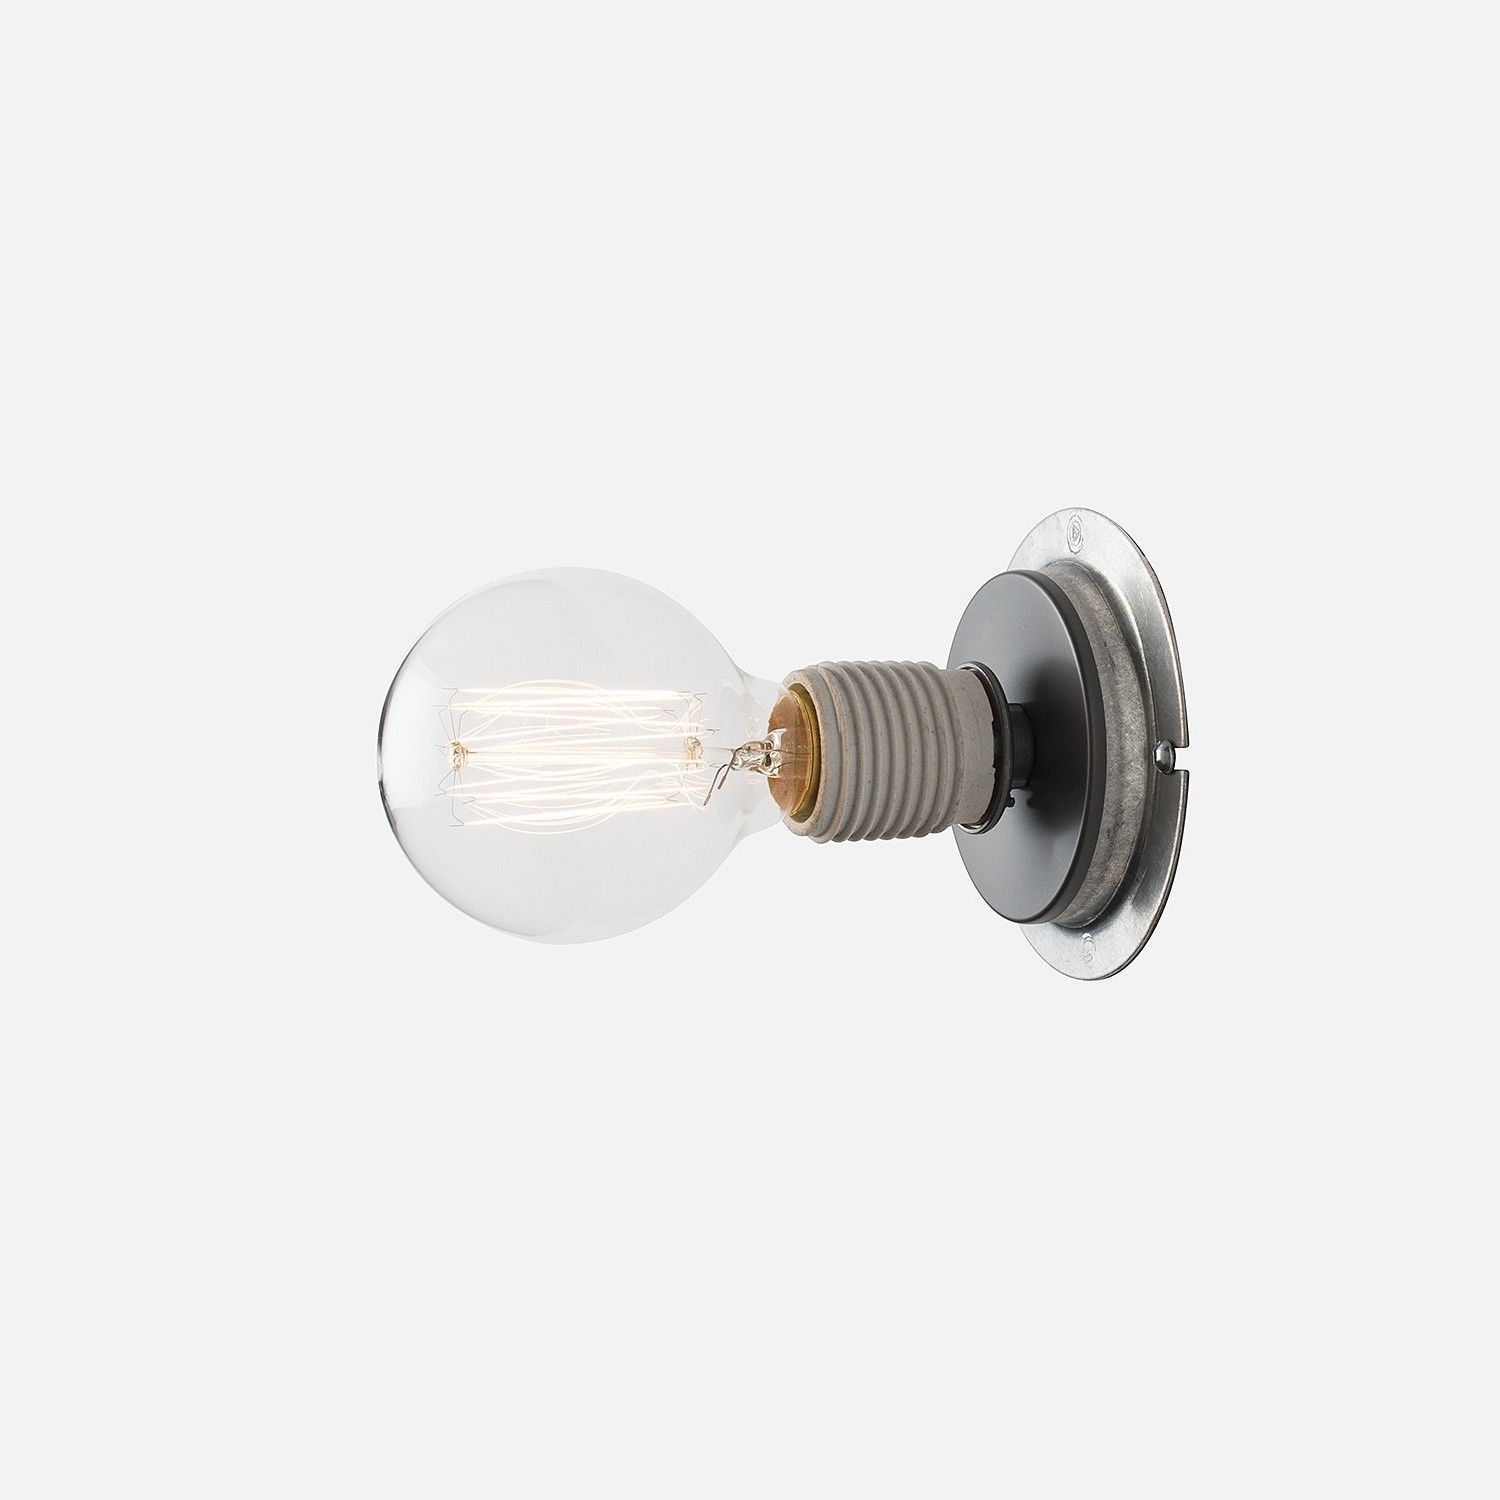 U/1 Sconce | Schoolhouse electric, Bulbs and Galvanized steel for Electric Bulb Holder  58lpg